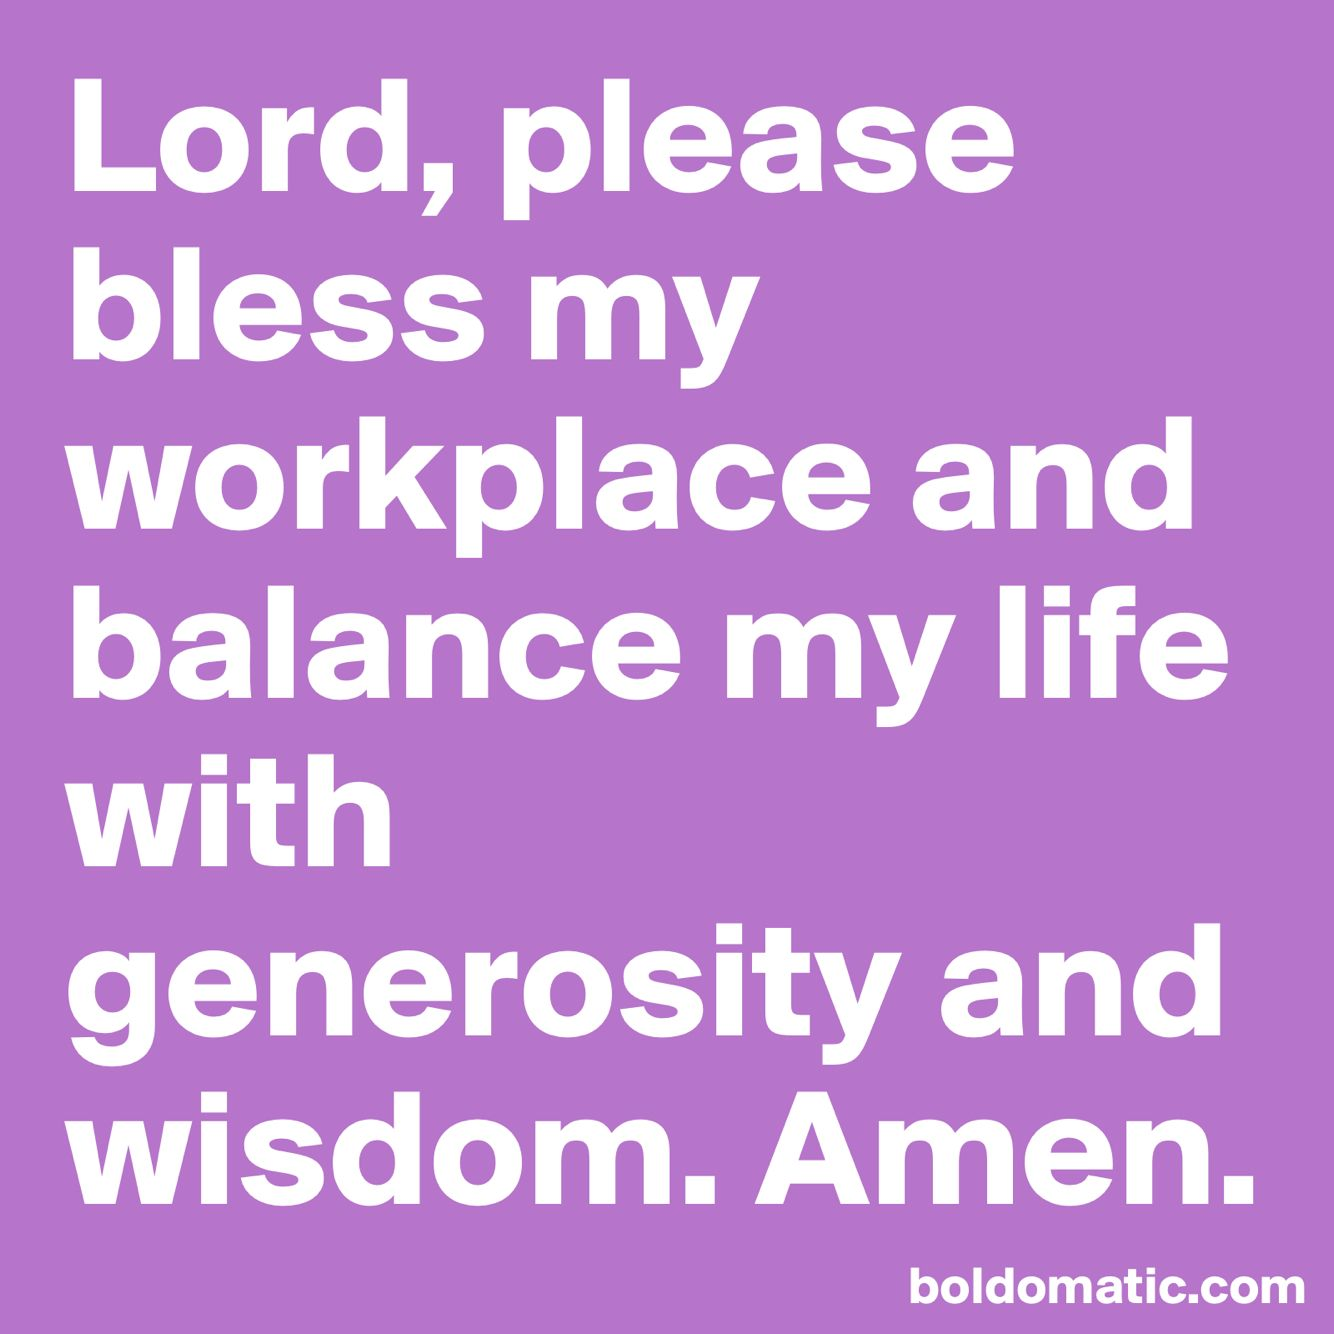 Lord, please bless my workplace and balance my life with